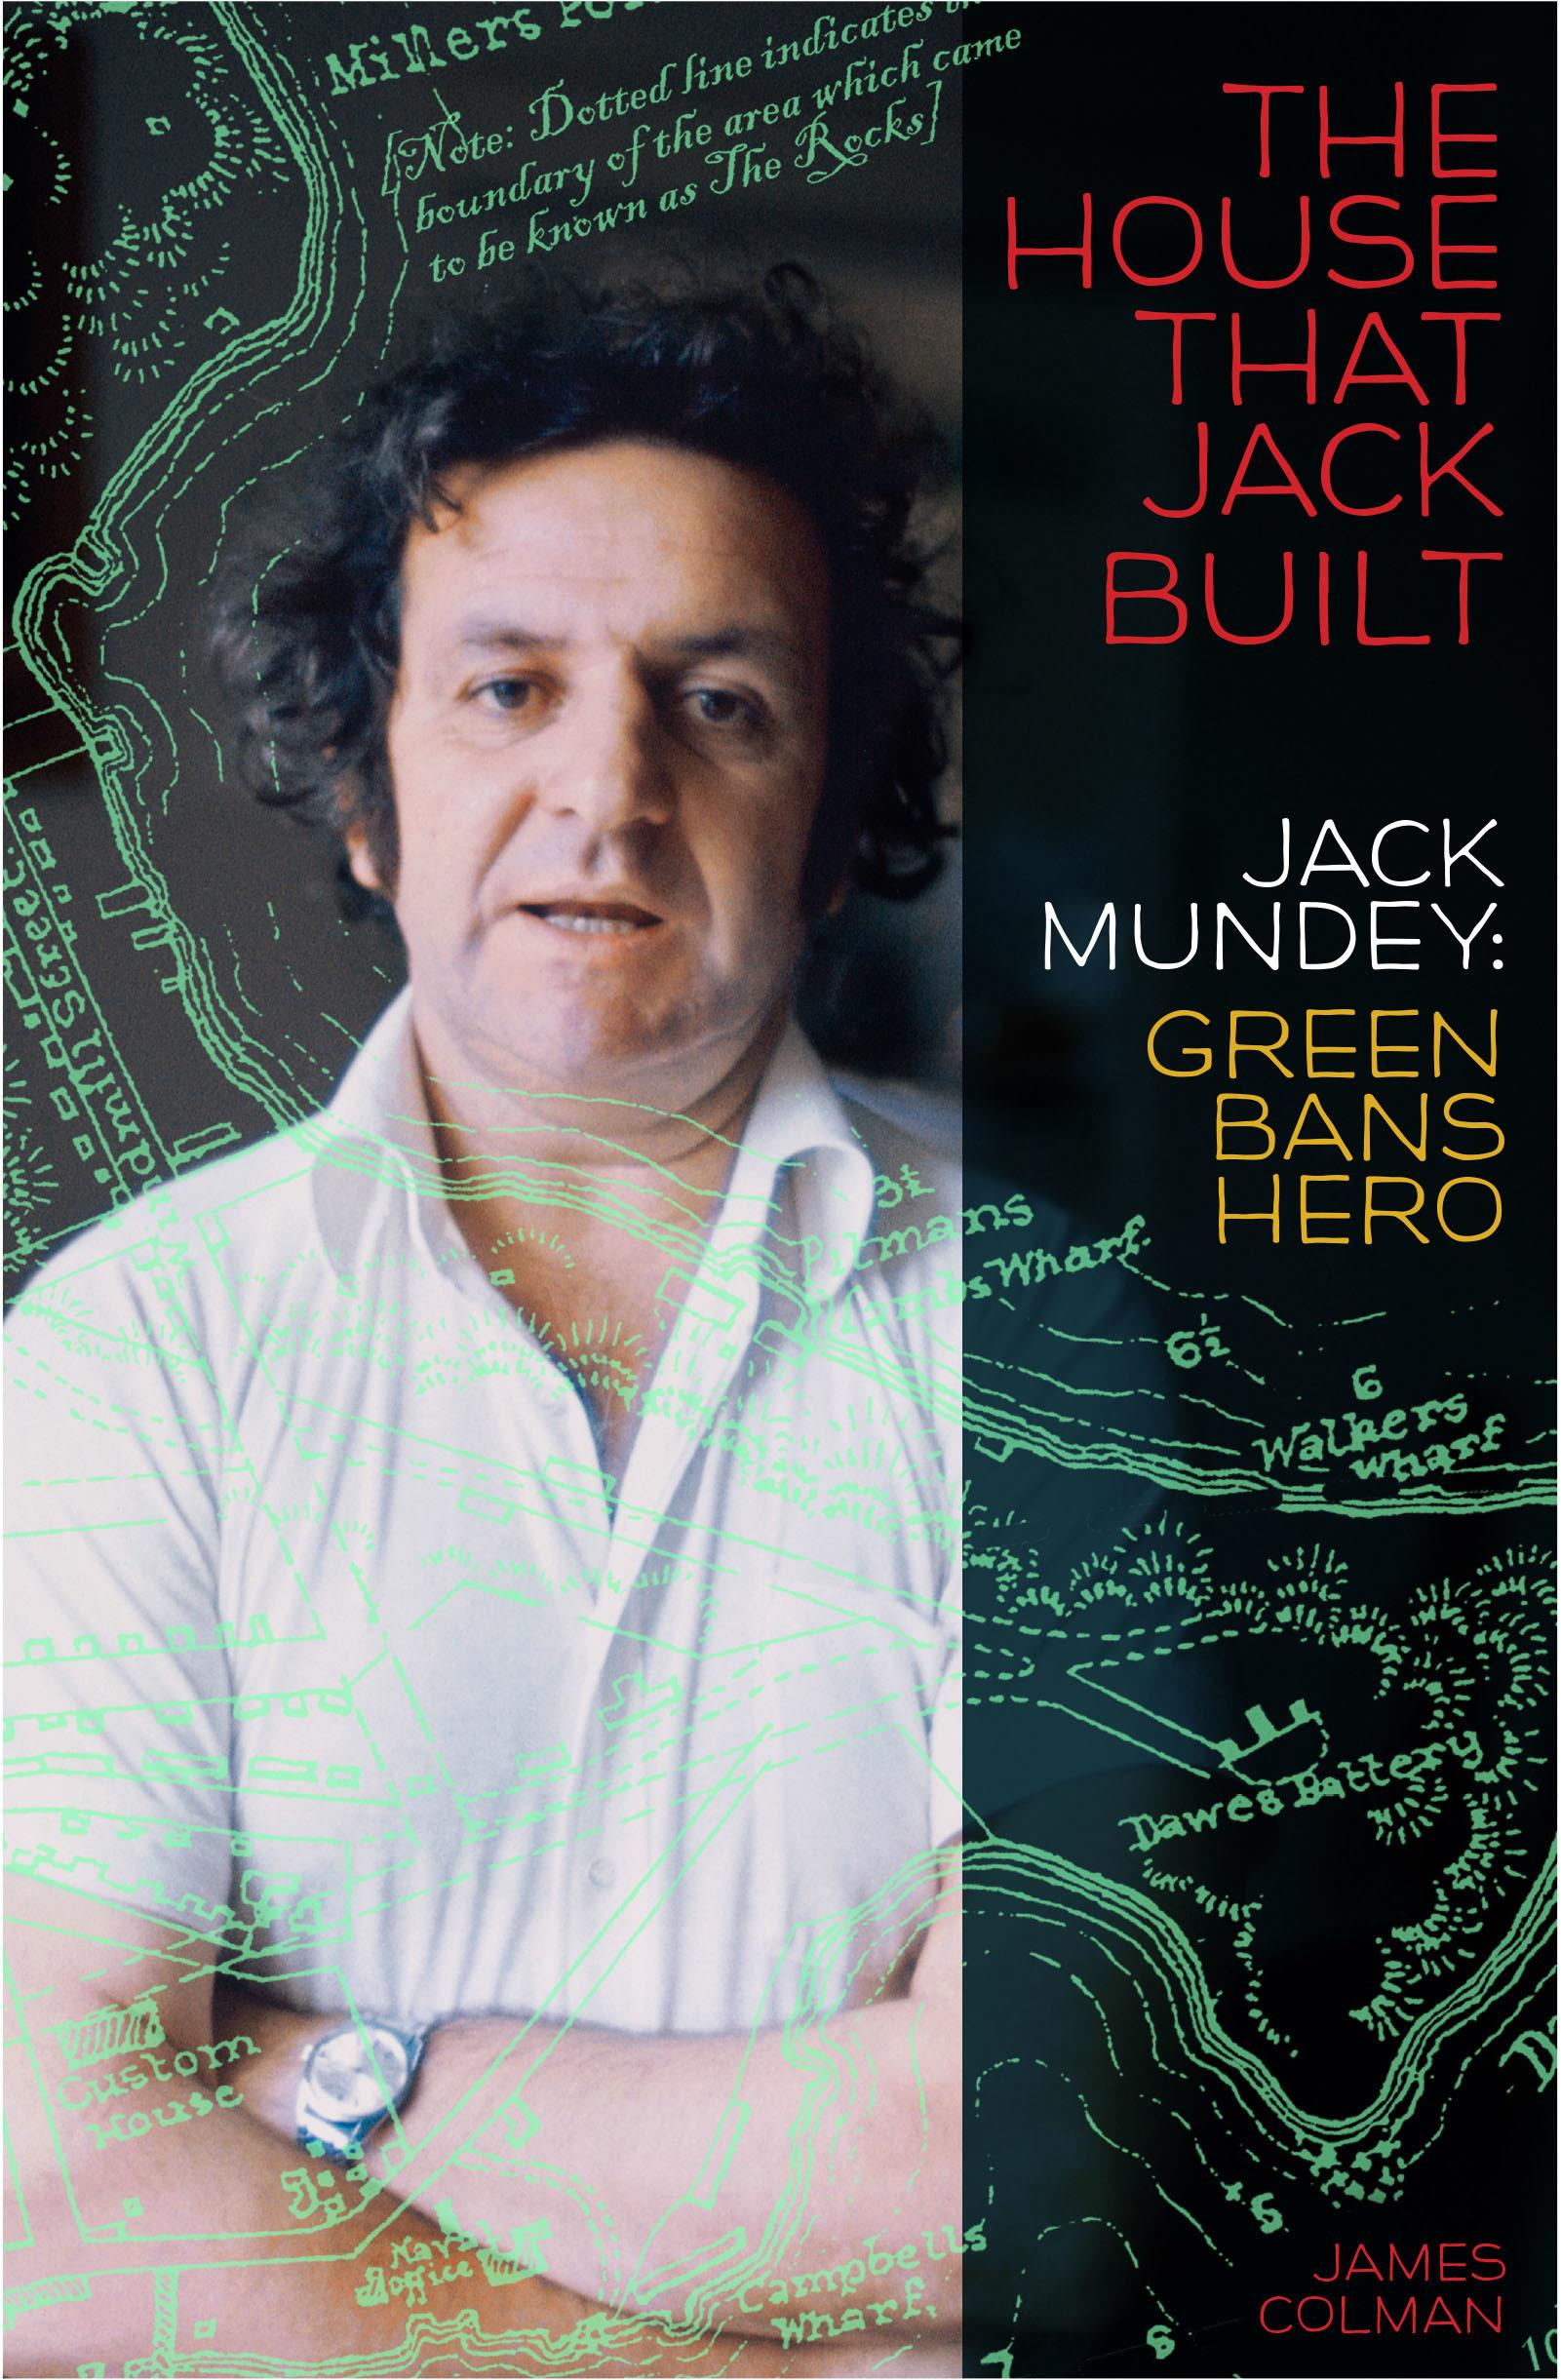 The House That Jack Built: Jack Mundey, Green Bans hero